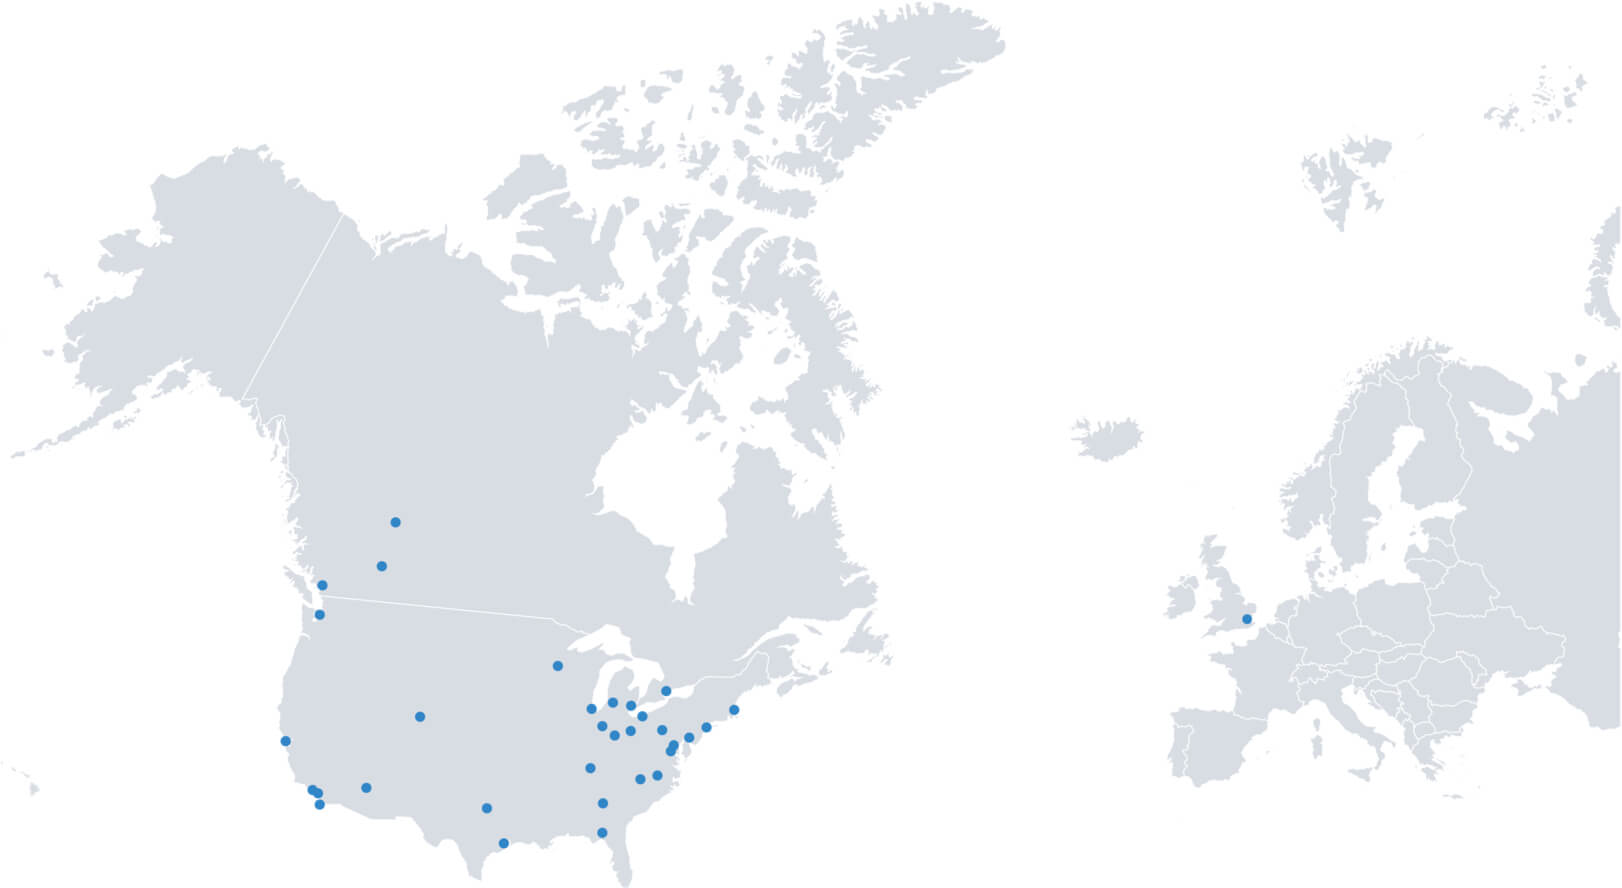 PitchBook Map